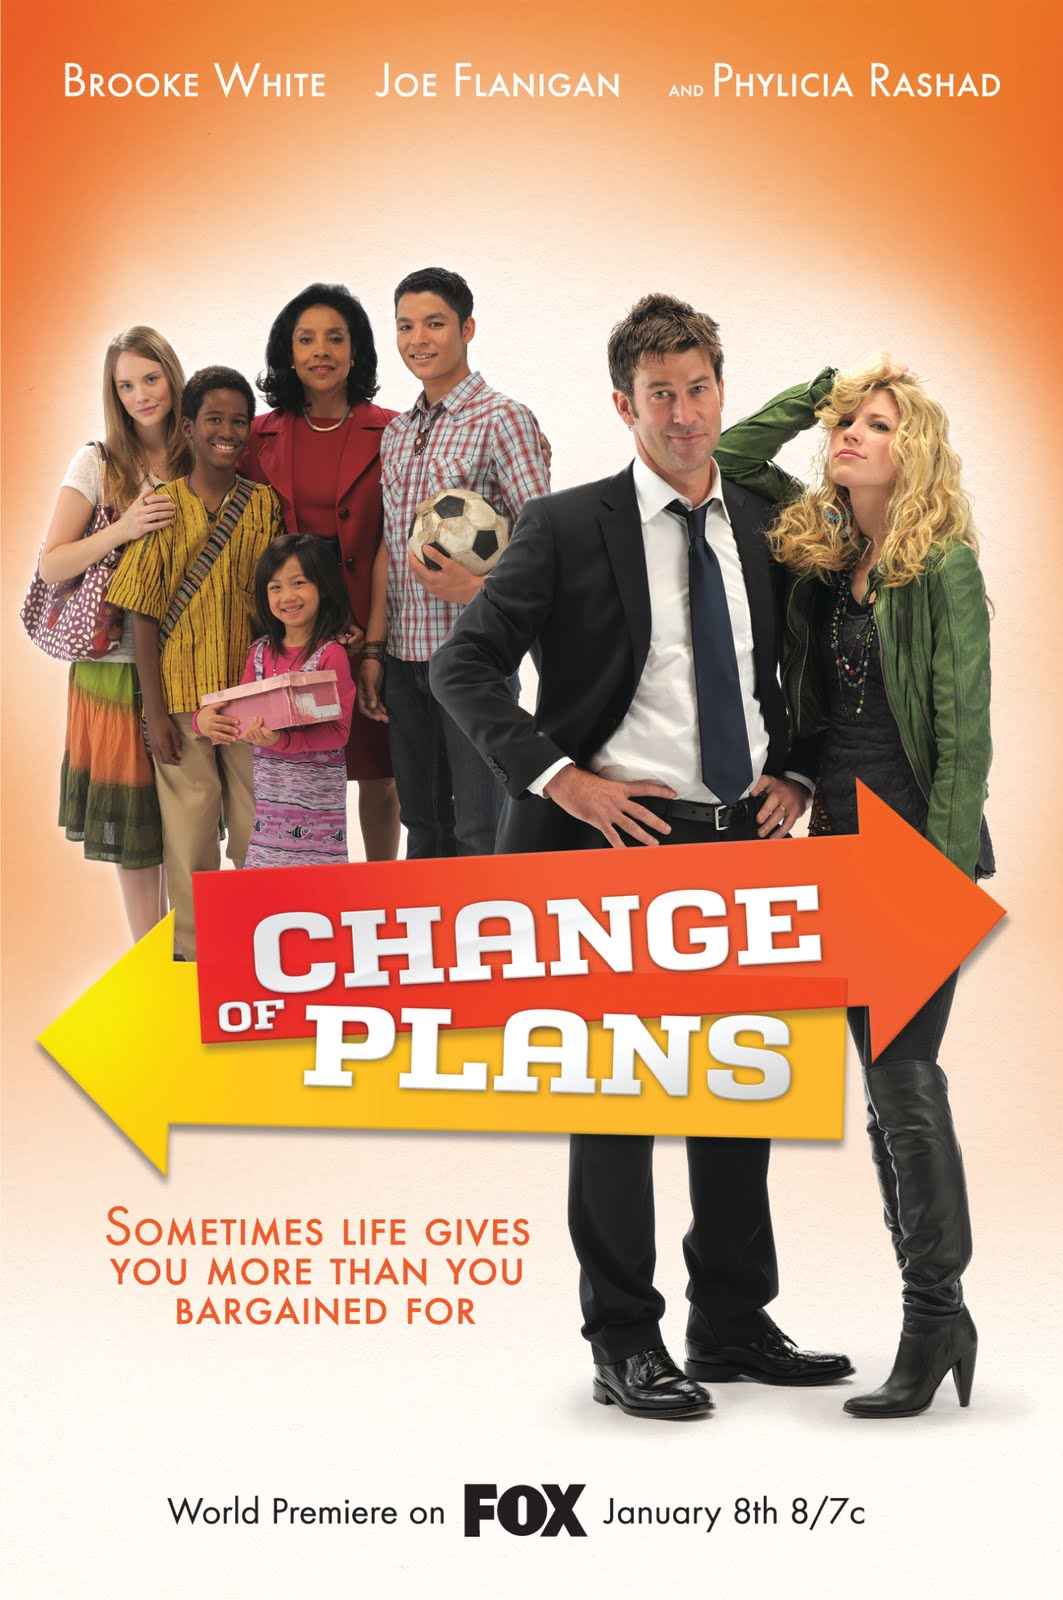 http://1.bp.blogspot.com/_hdntn4P0Fy8/TSdmz5Mk2_I/AAAAAAAACgw/Hs00sDkCXvE/s1600/Change-of-Plans-Movie-Poster.jpg